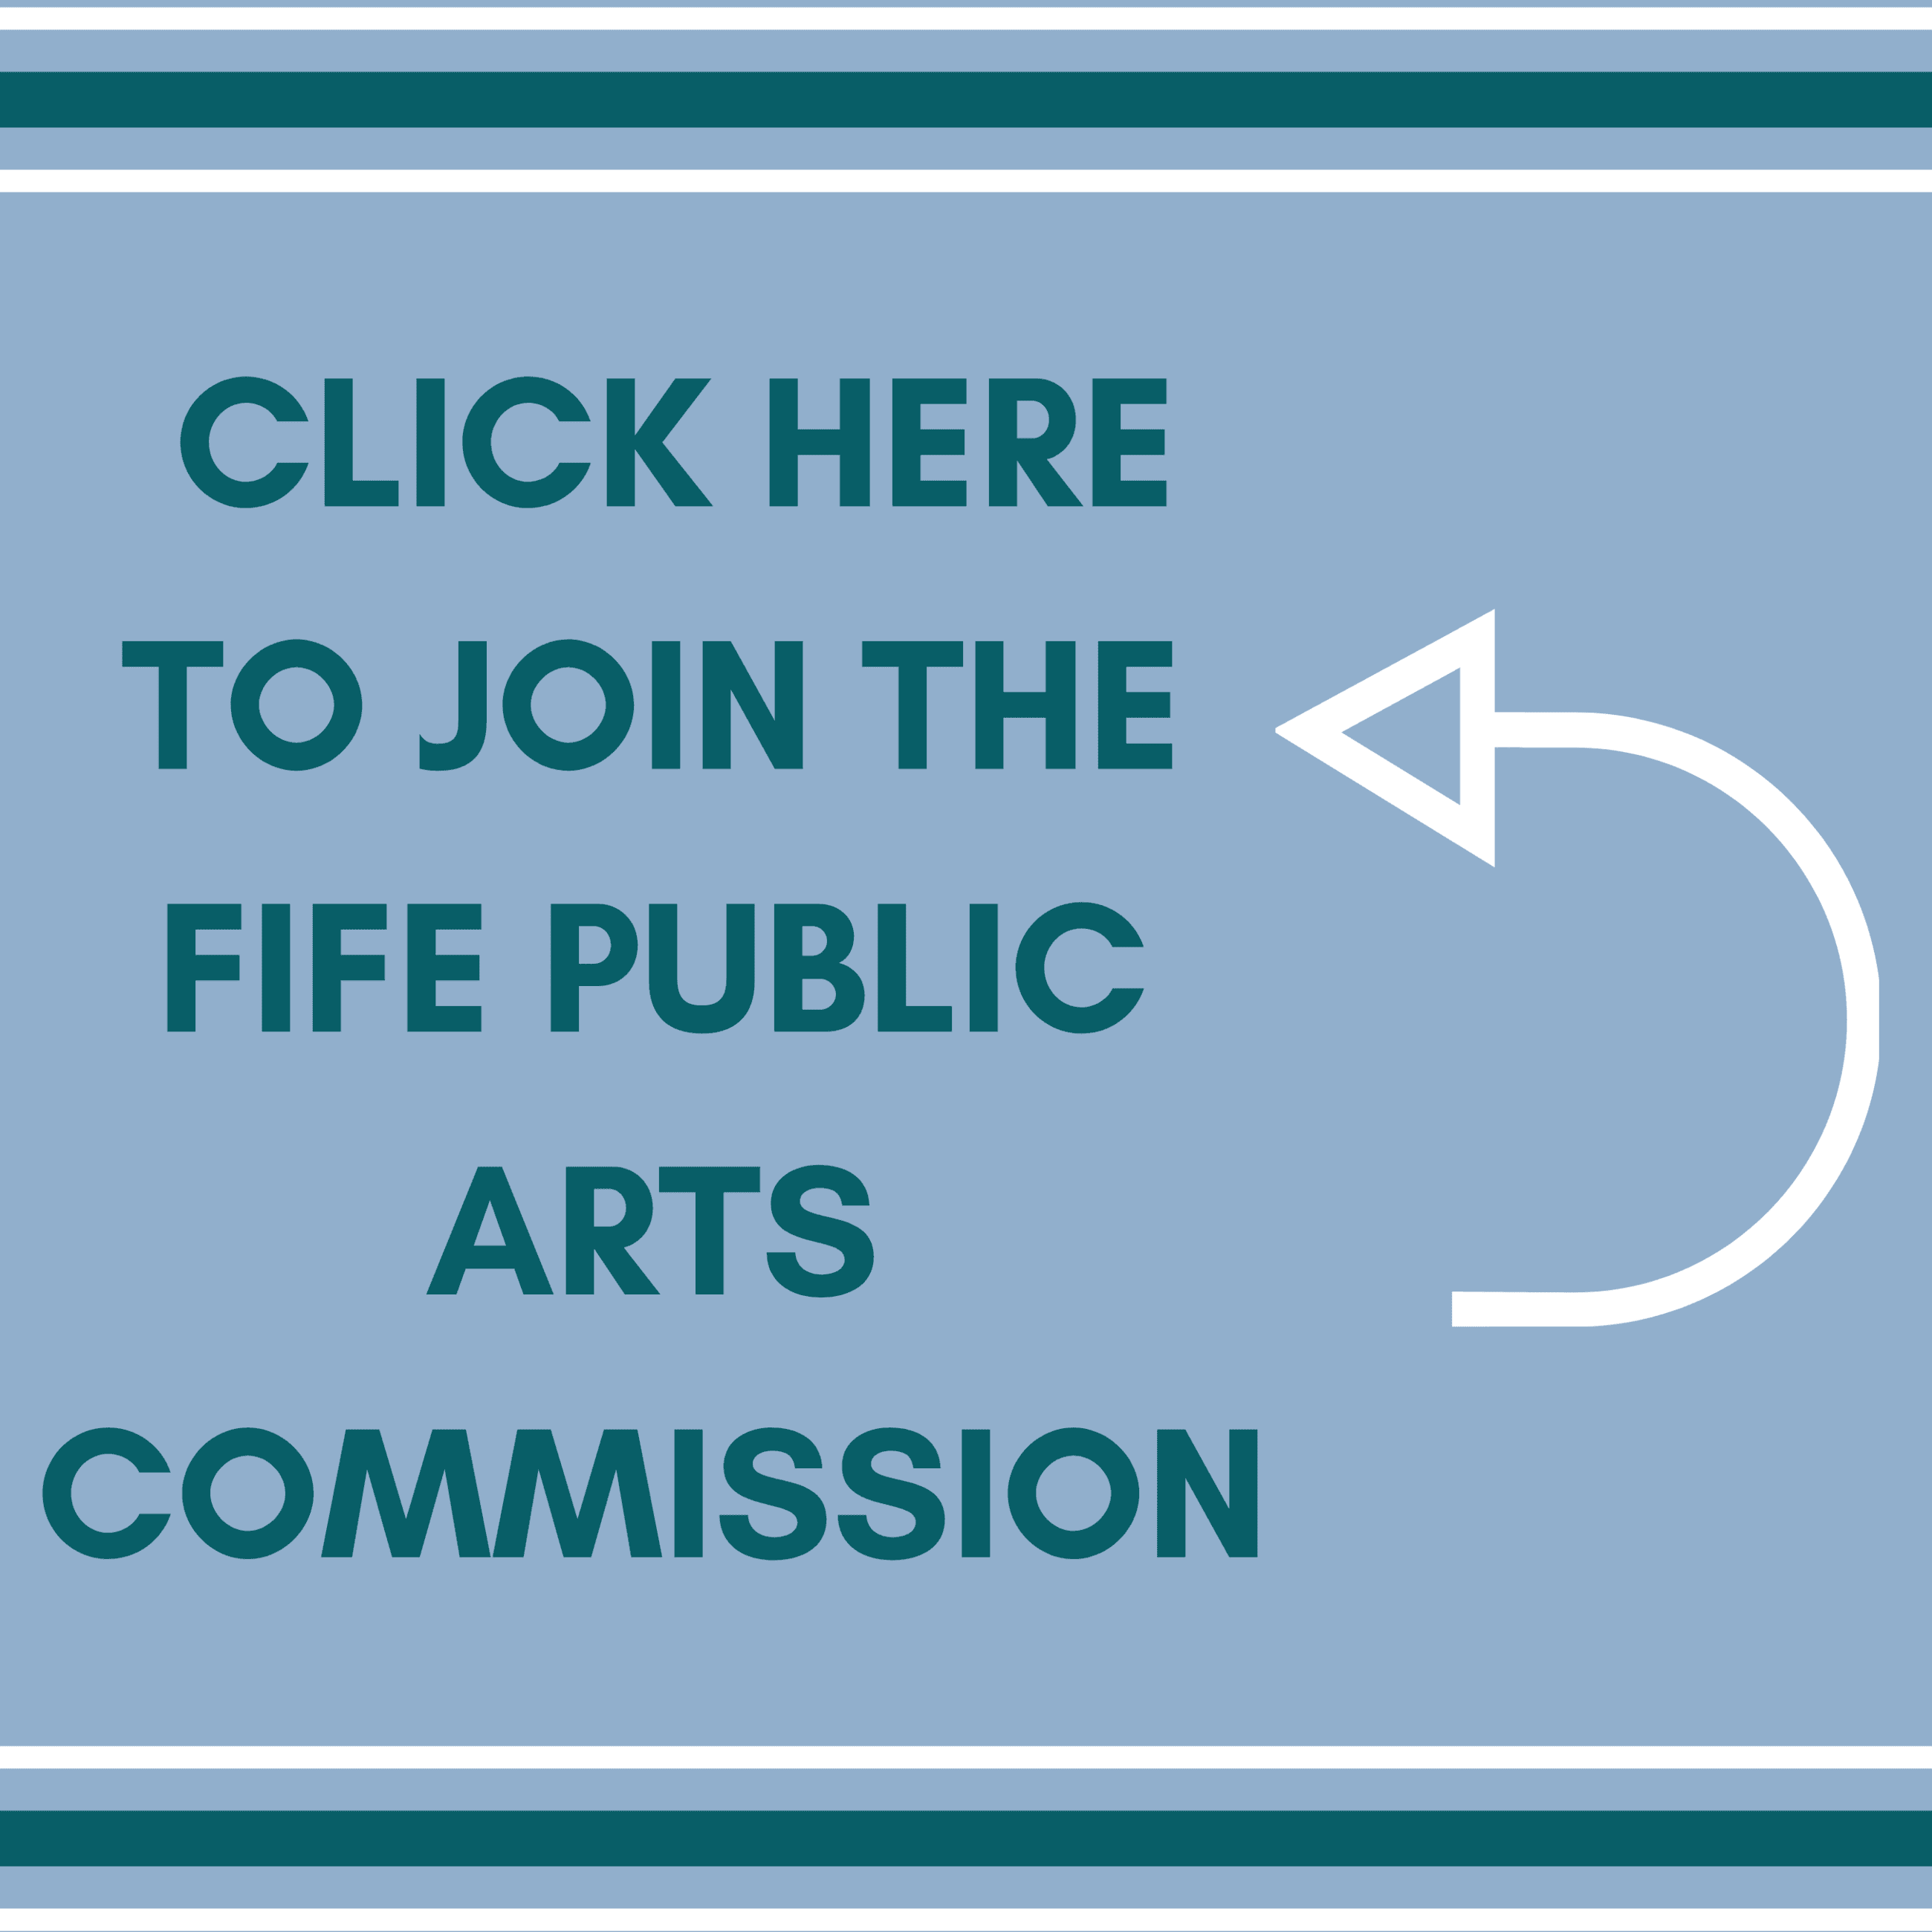 CLICK TO JOIN THE ARTS COMMISSION